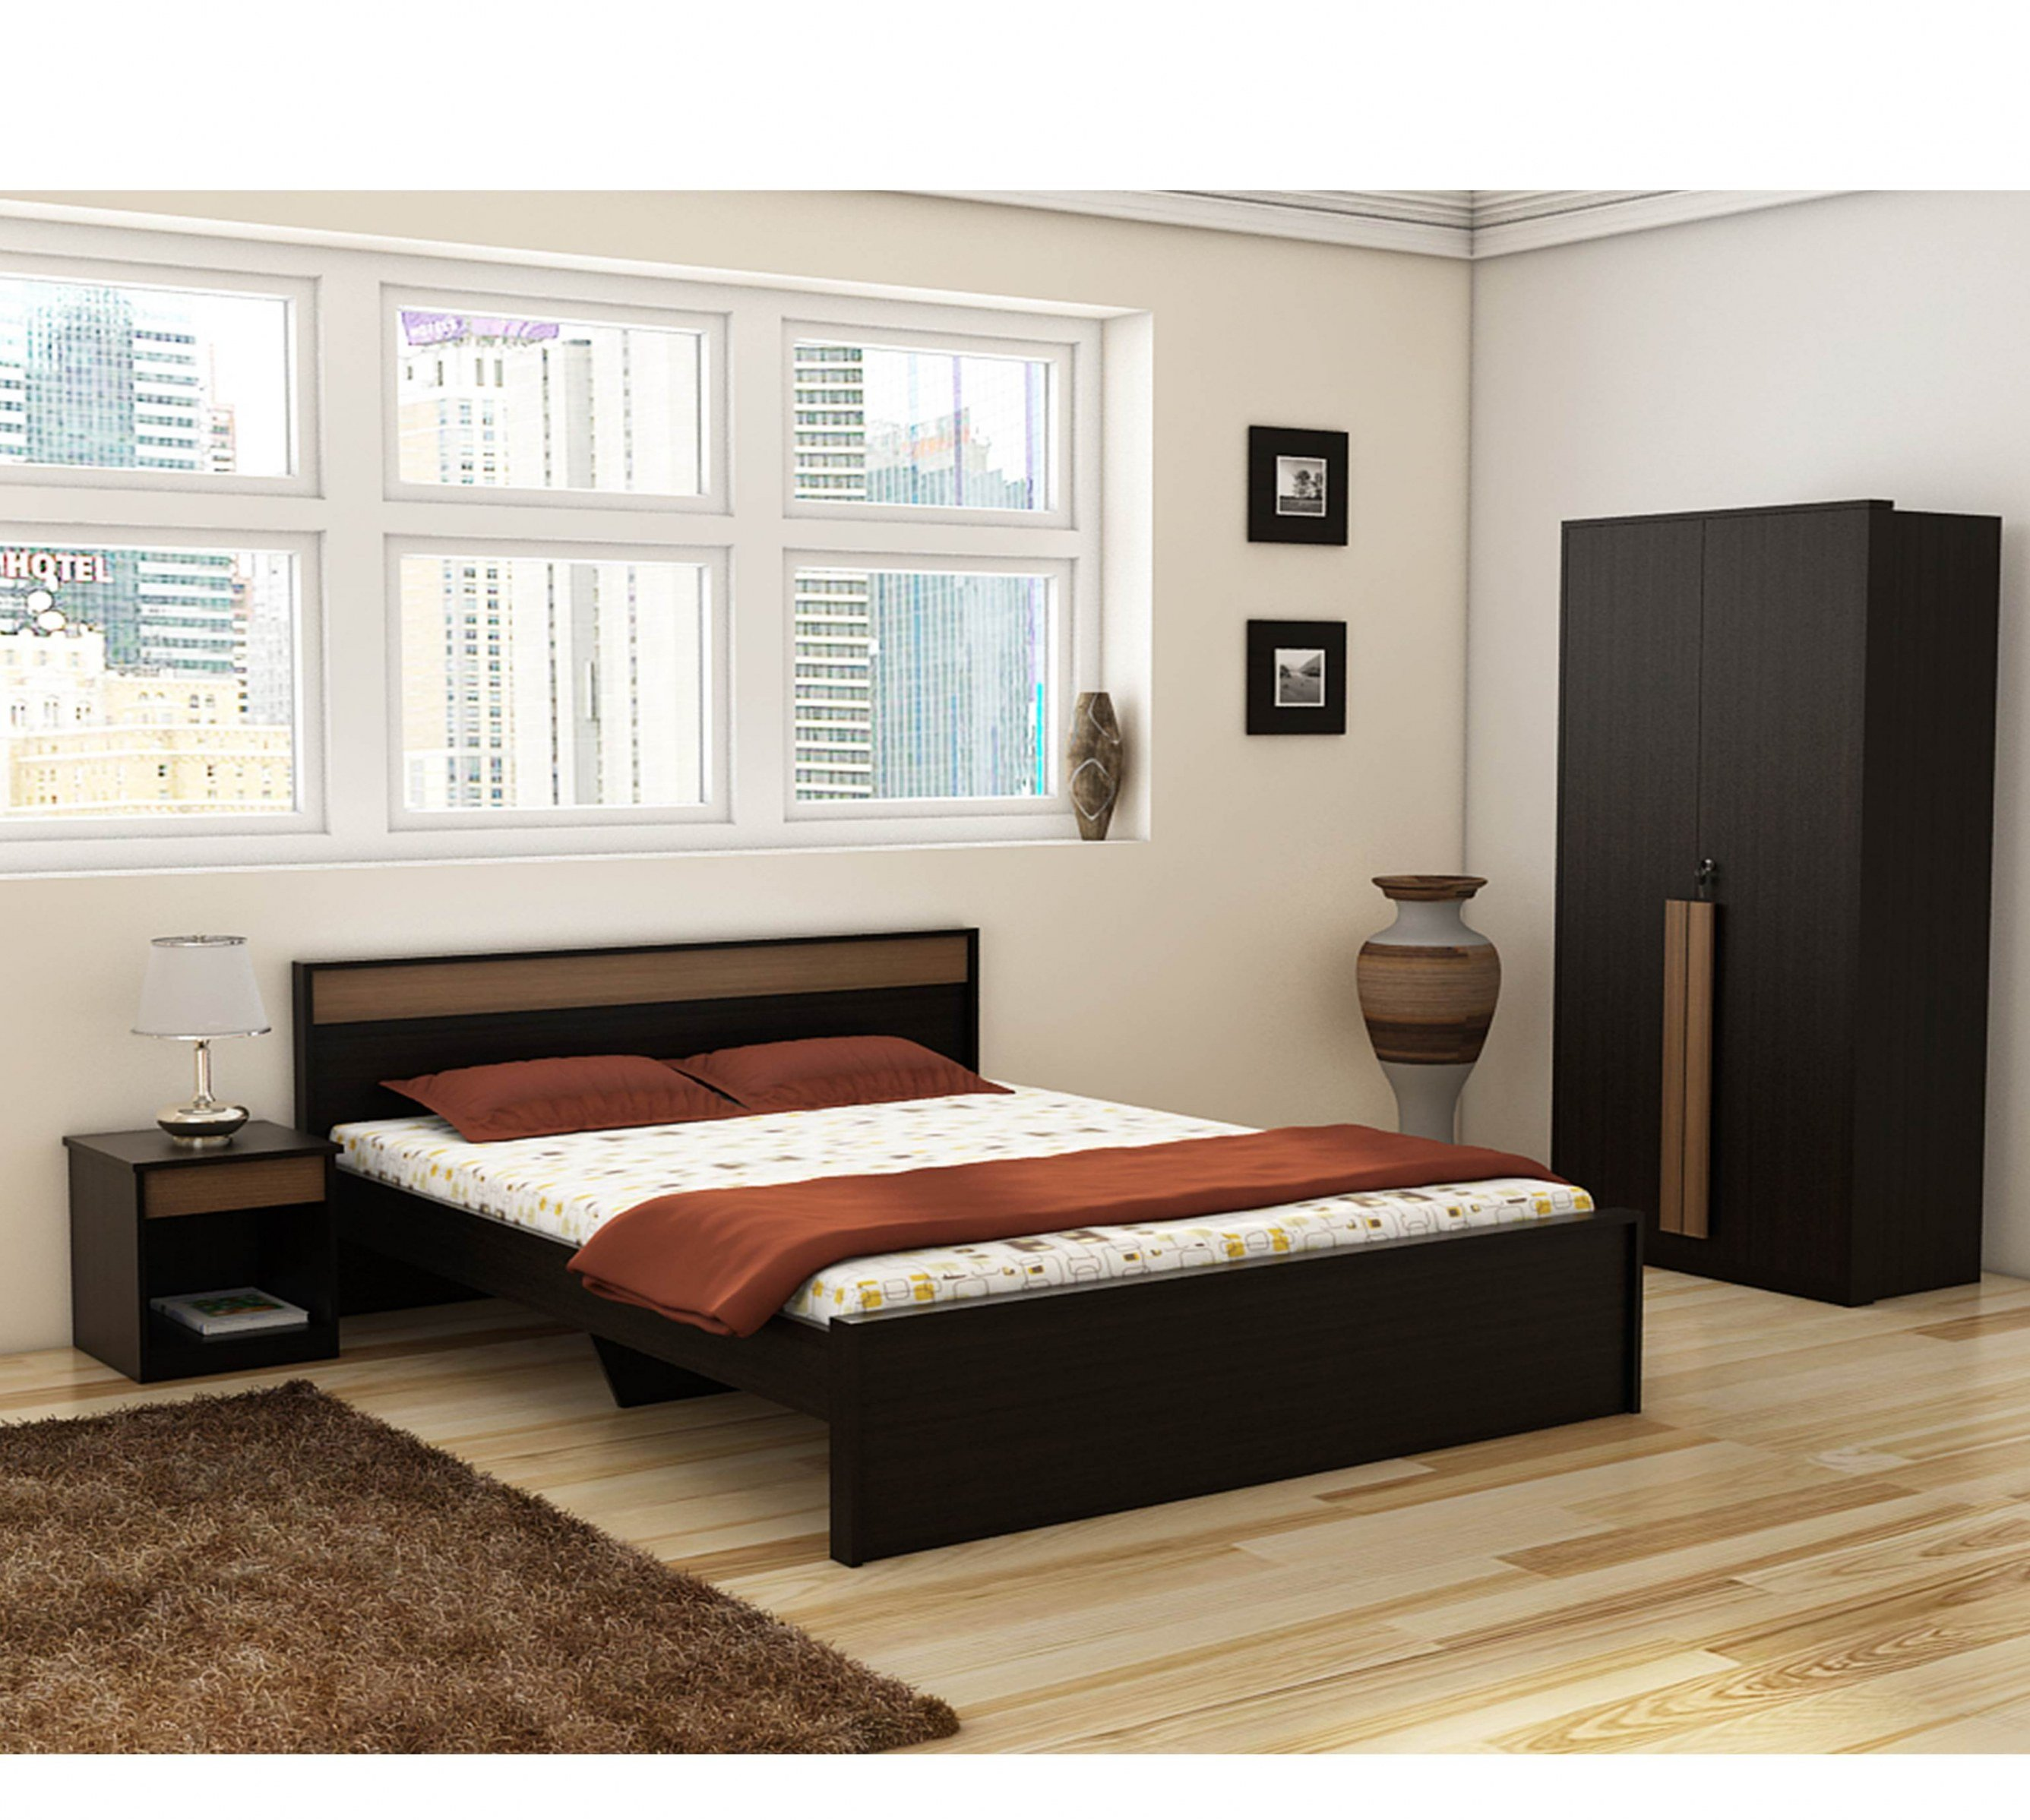 Full Bedroom Furniture Set Beautiful Low Beds Ikea White Bedroom Furniture Sets Ikea White Hemnes